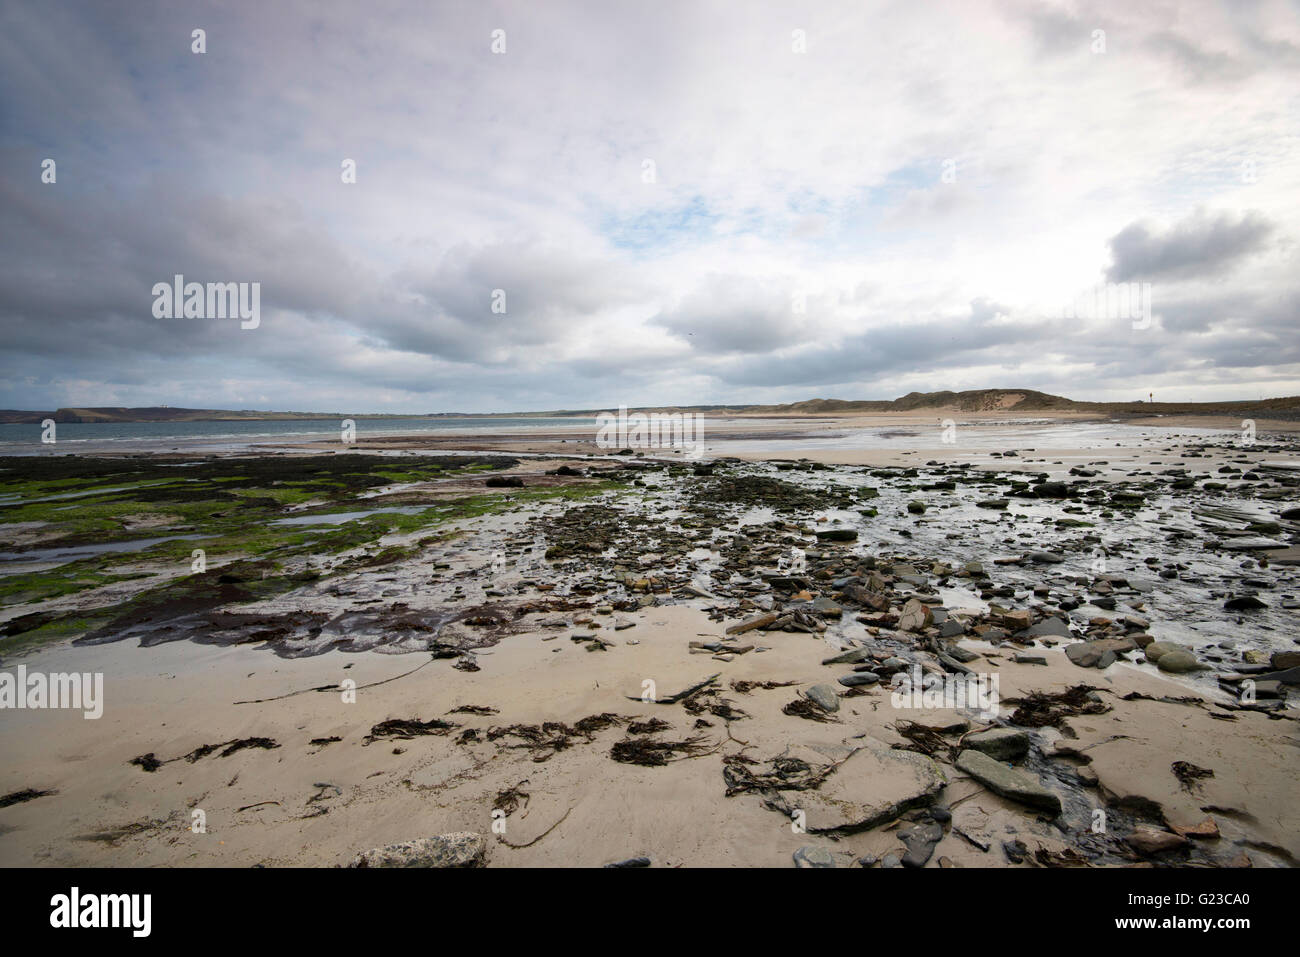 The Beach at Dunnet Bay in Thurso, Caithness Scotland UK - Stock Image